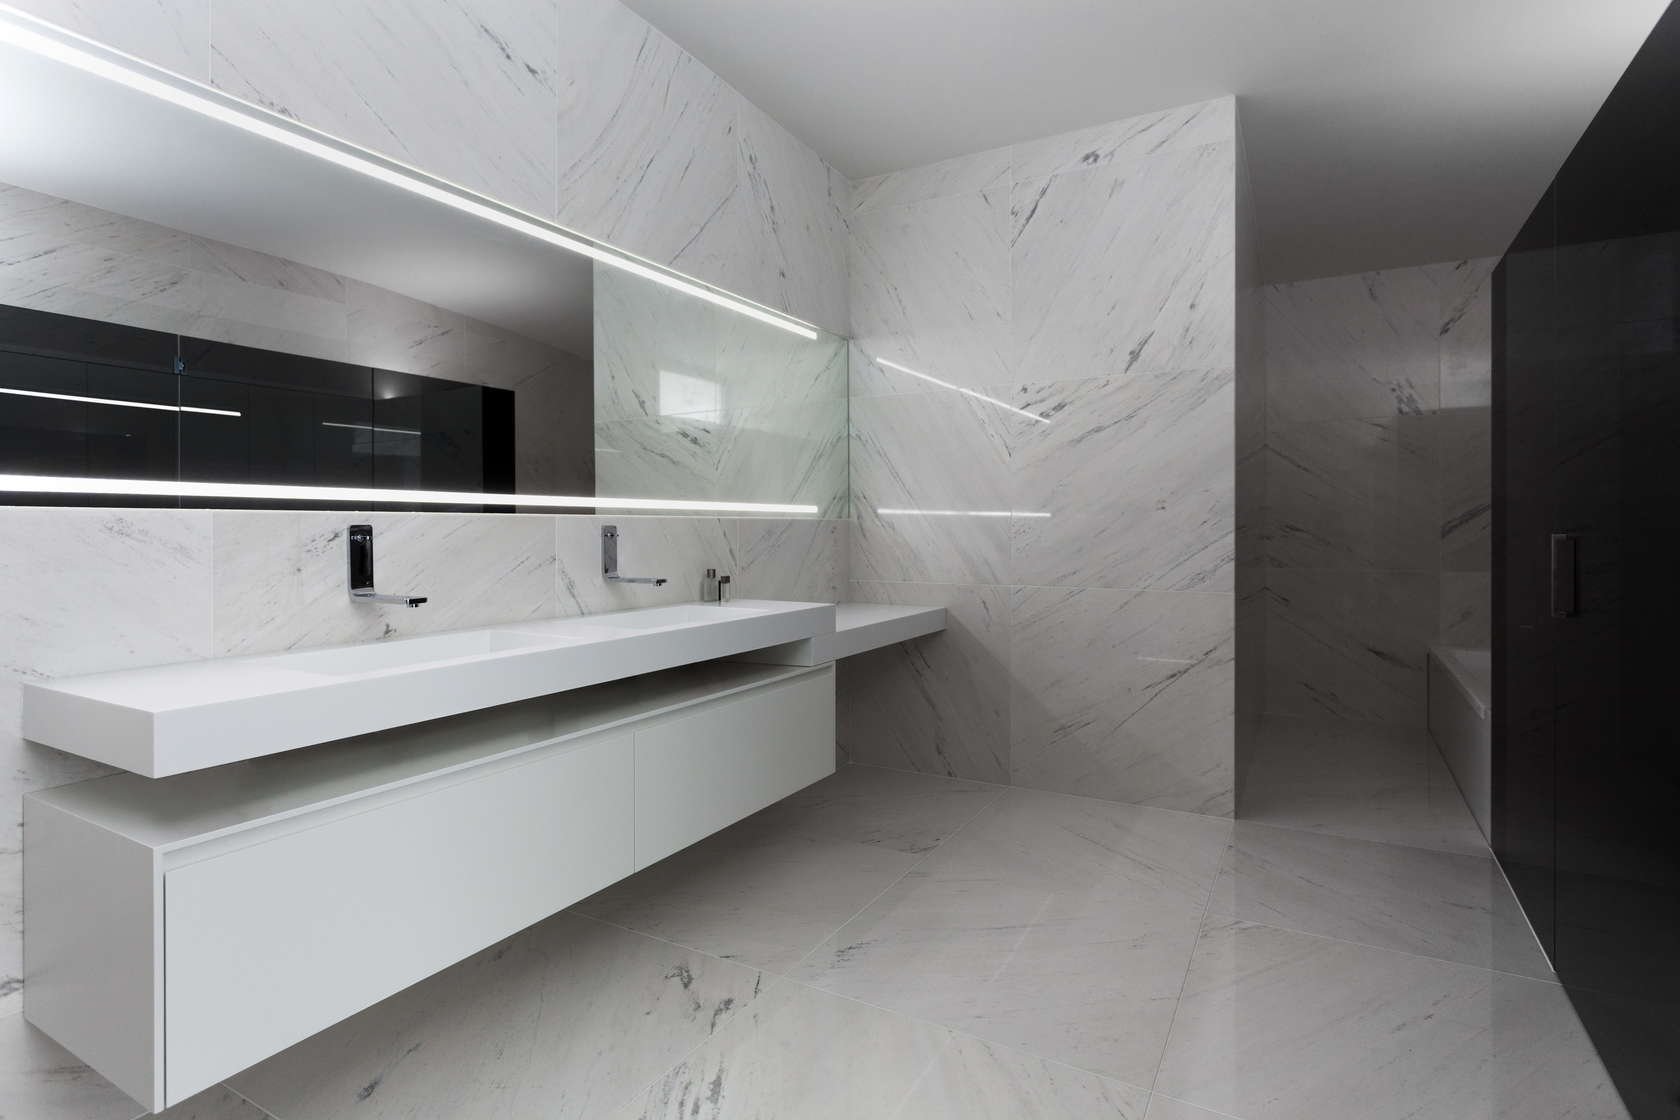 marble-bathroom-design | Interior Design Ideas.